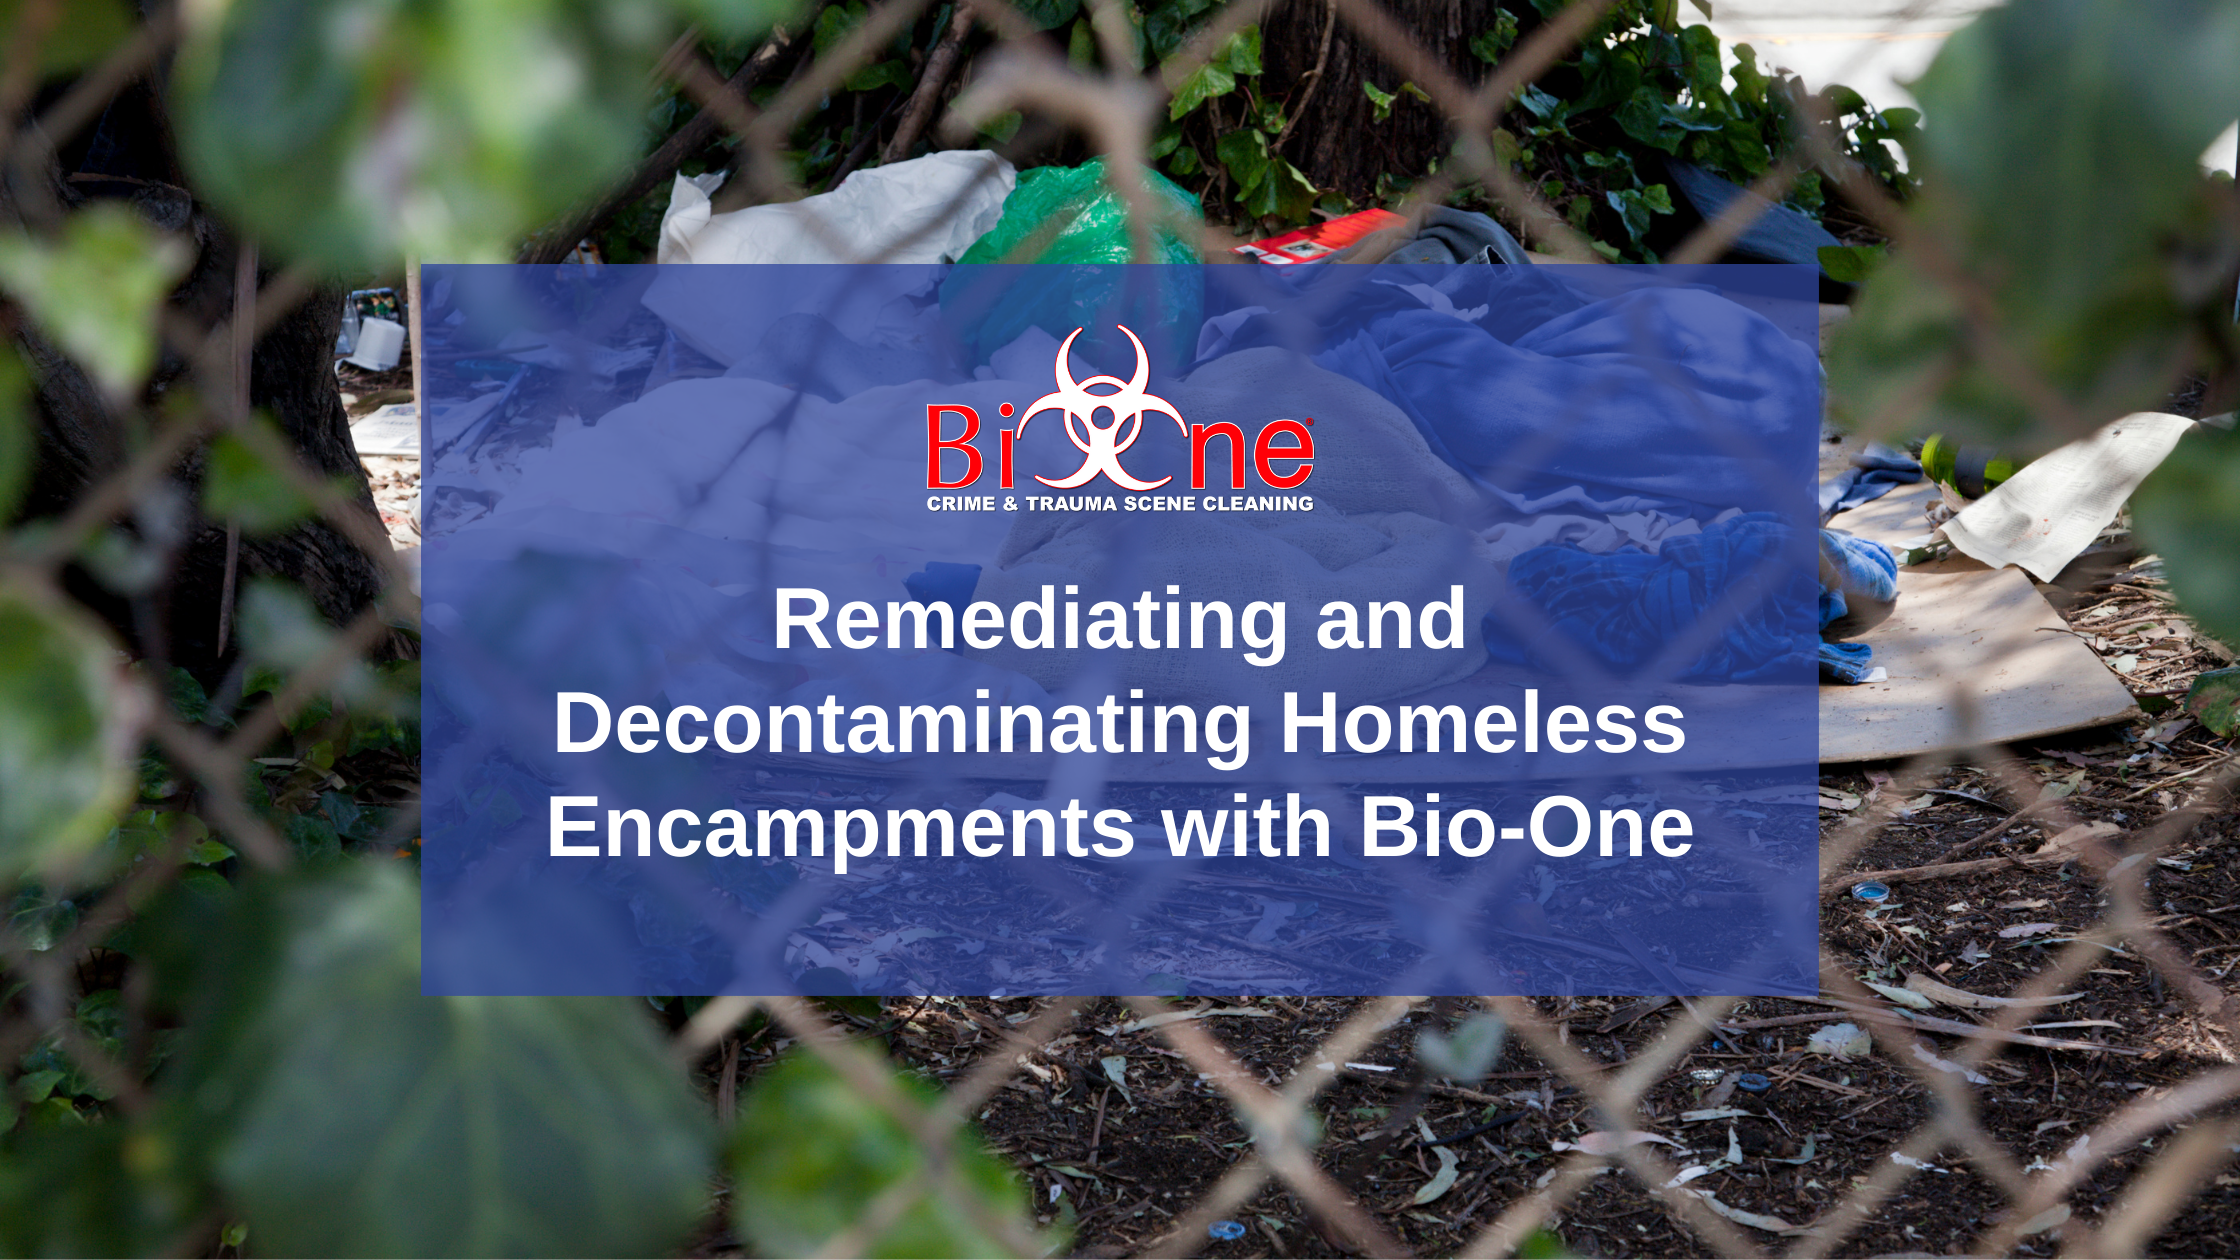 Remediating and Decontaminating Homeless Encampments with Bio-One